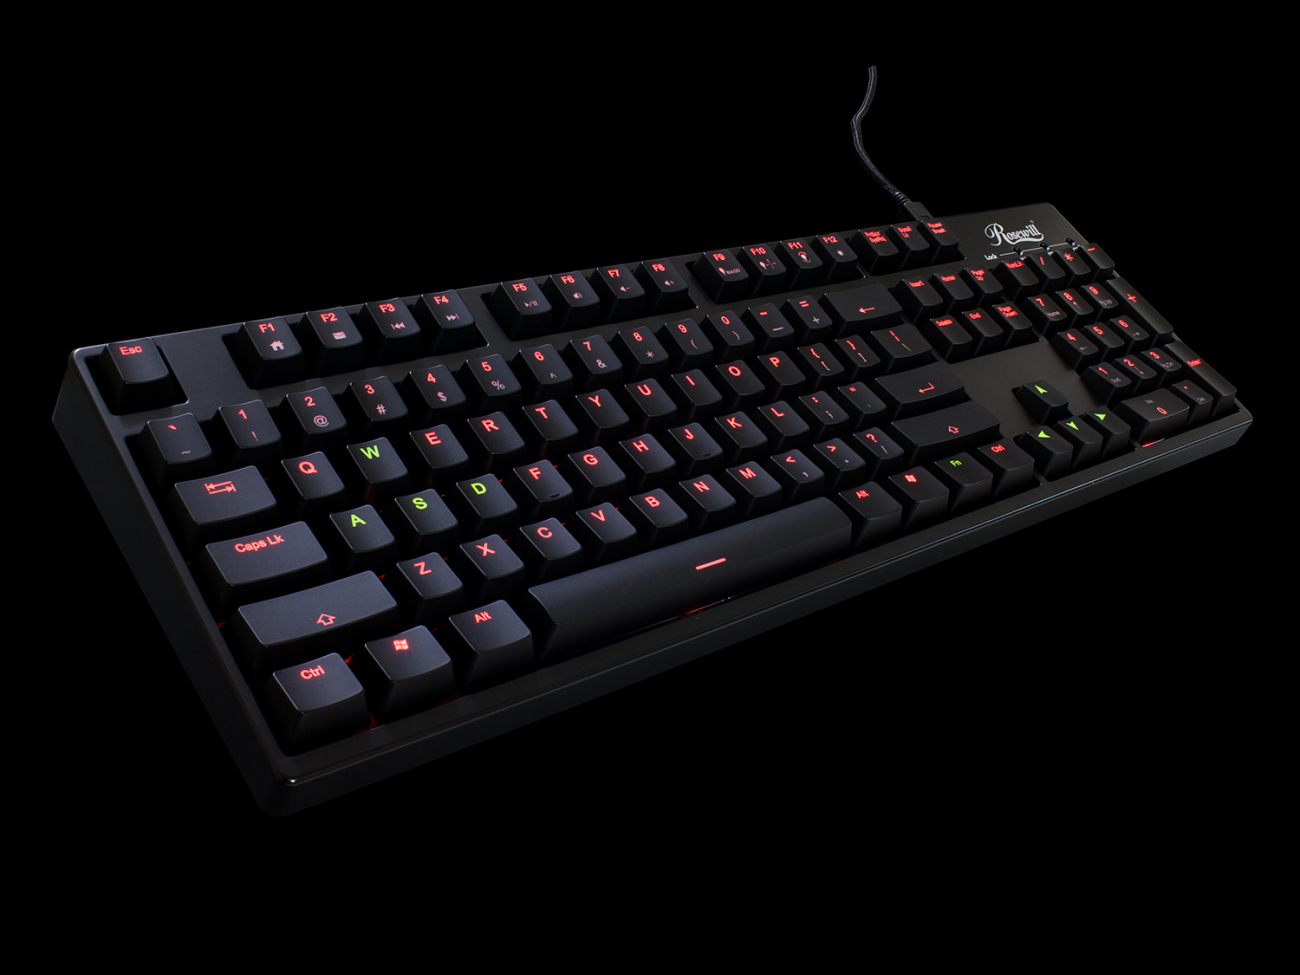 rosewill_unveils_new_mechanical_keyboard_throne_and_more